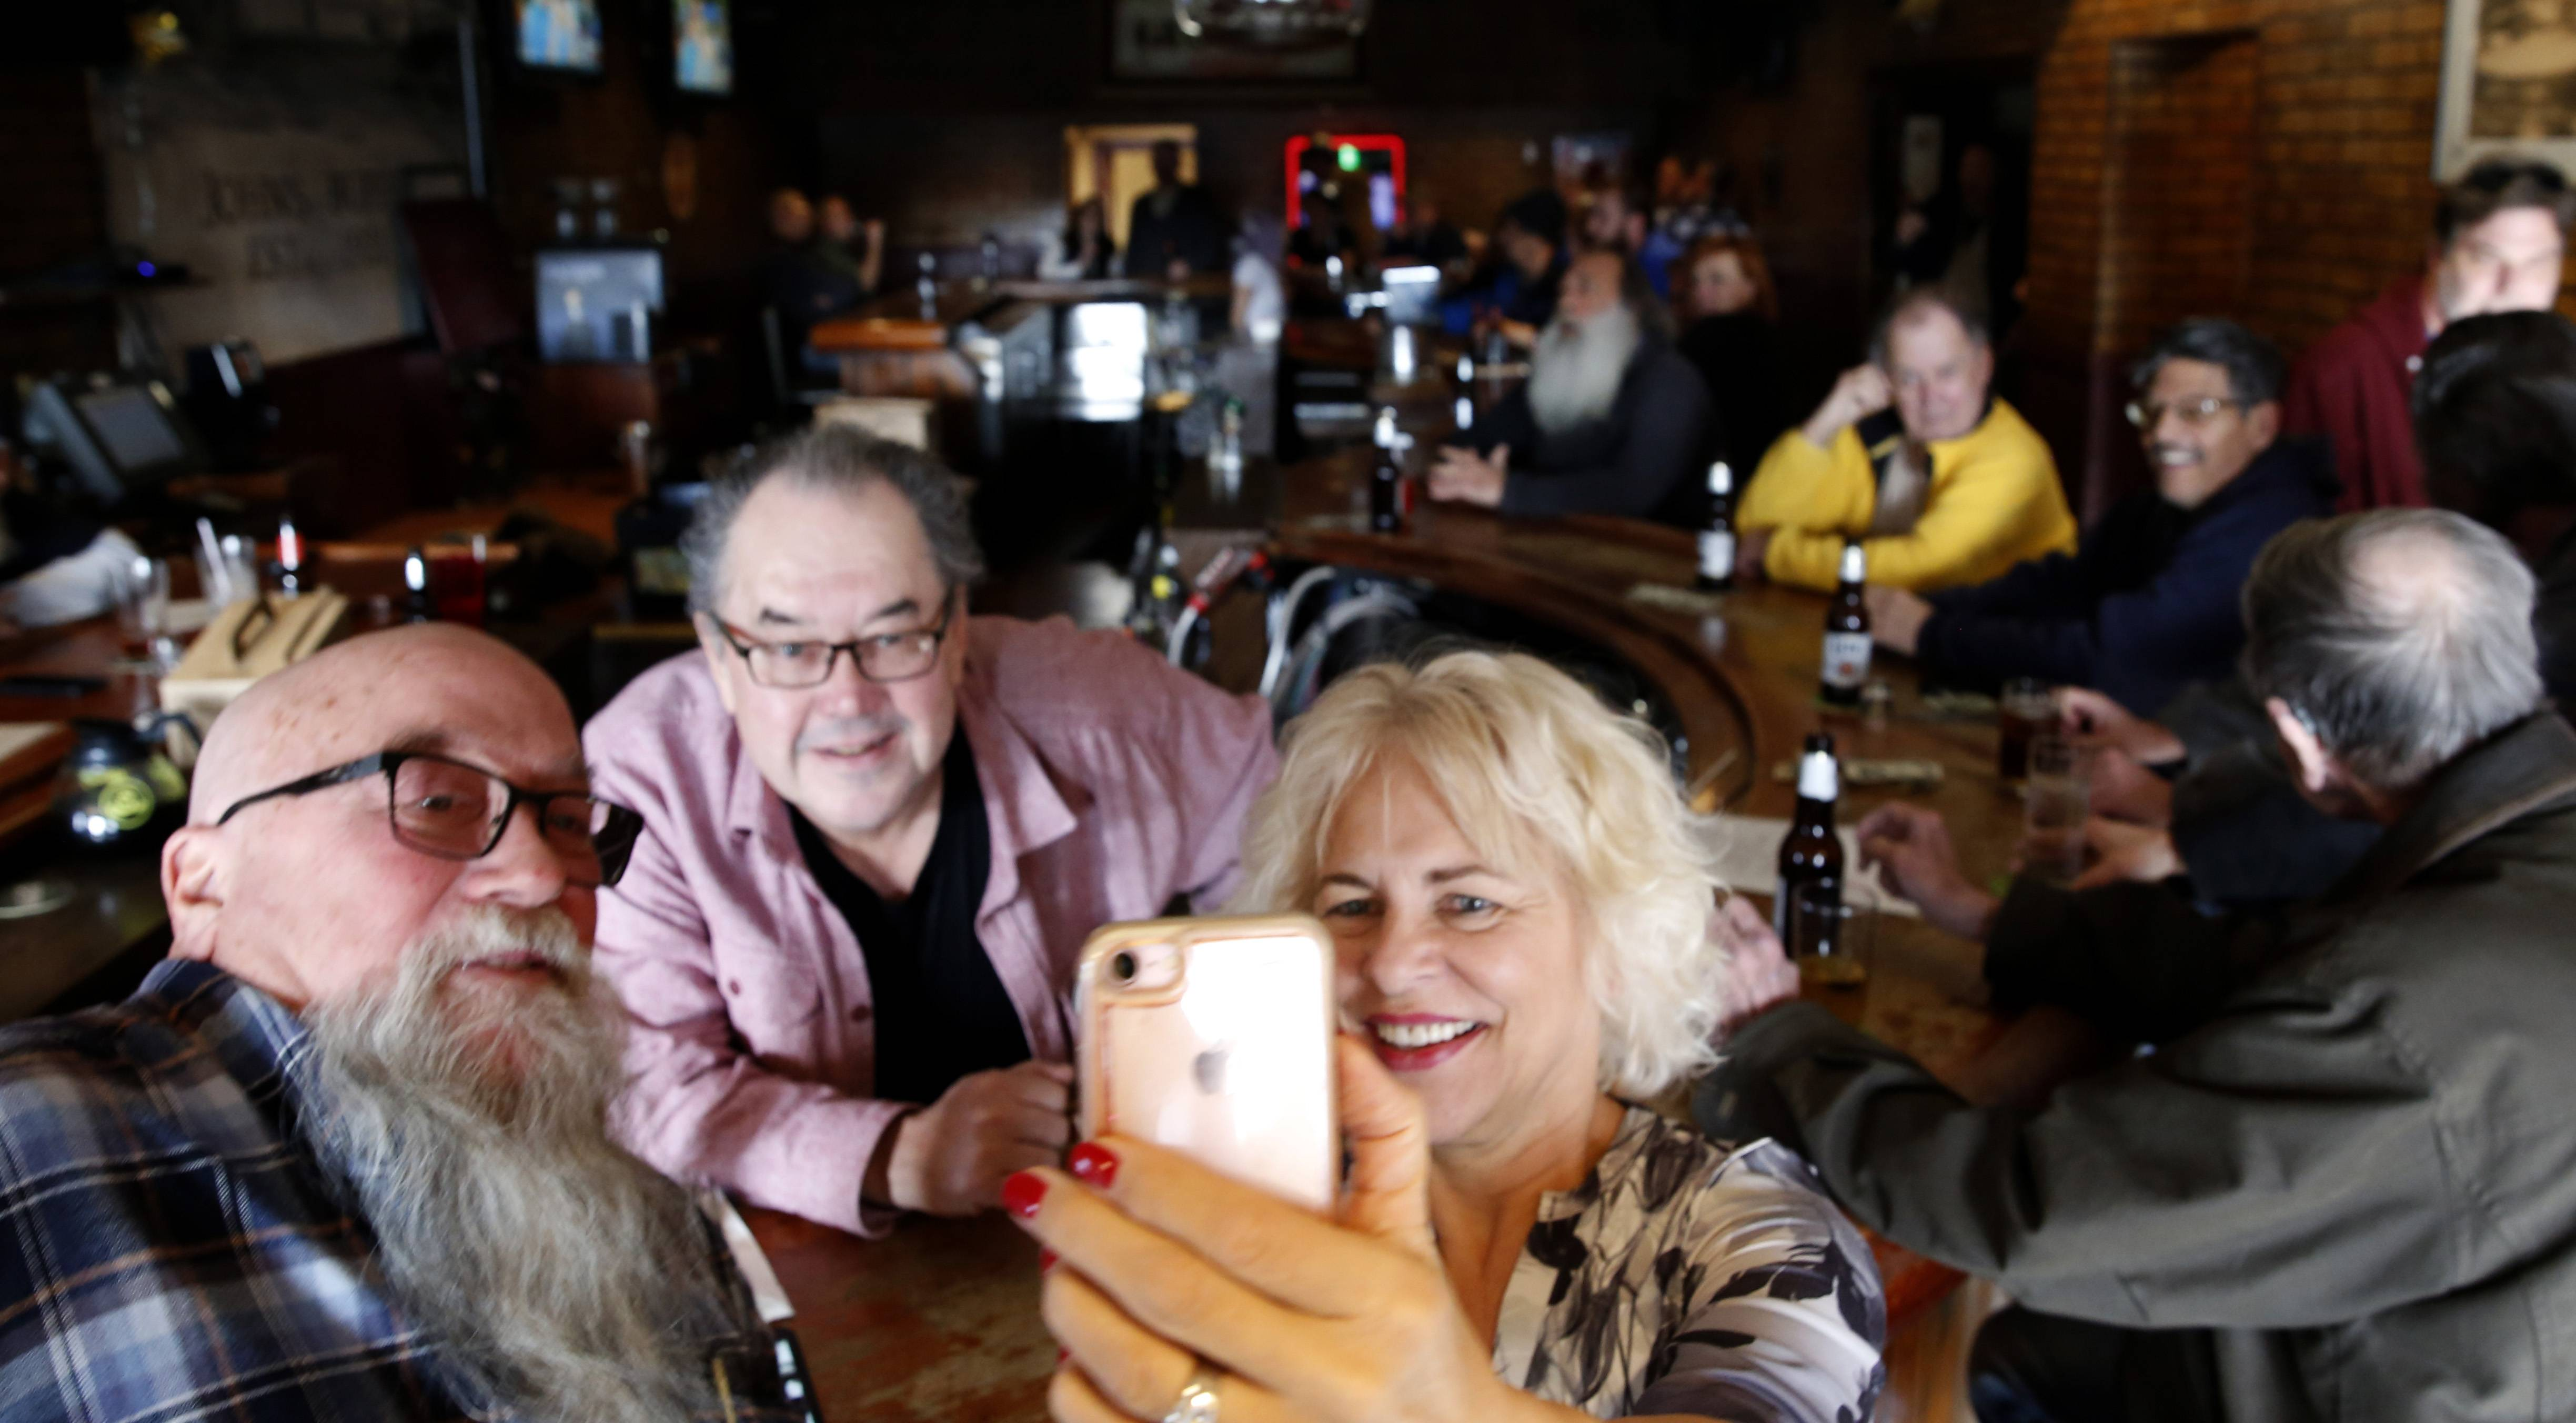 Mark and Sue Bosman, of Winfield take a selfie with John C. Karwoski, center, owner of John's Tavern in downtown Winfield. John's is closing its doors for the last time after being purchased by Northwestern Medicine. Mark Bosman said he had been coming to John's Tavern for 46 years.